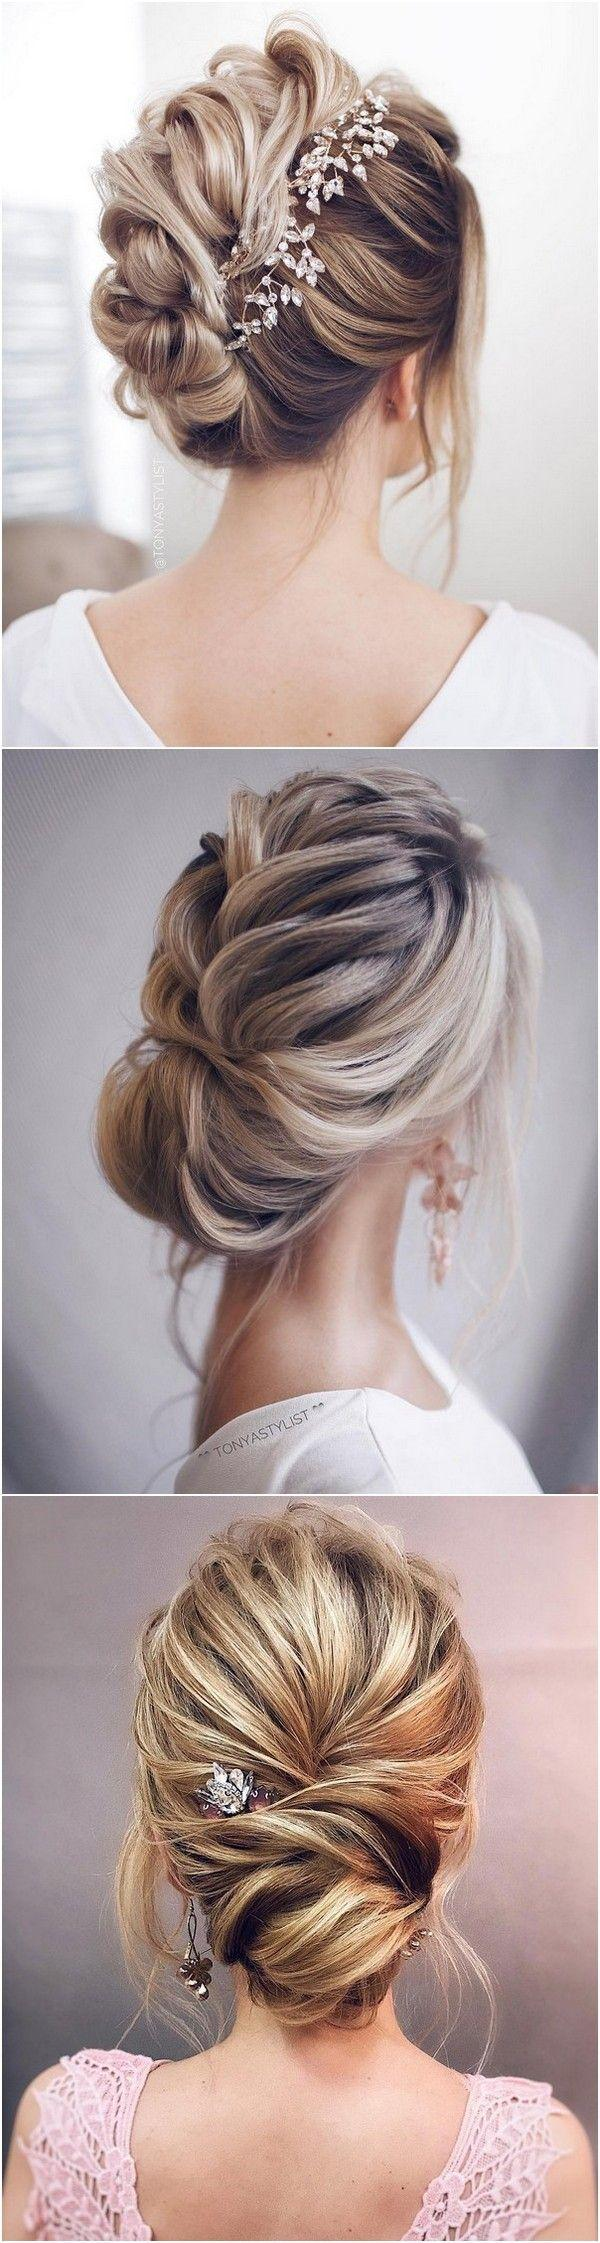 12 So Pretty Updo Wedding Hairstyles From Tonyapushkareva 2807350